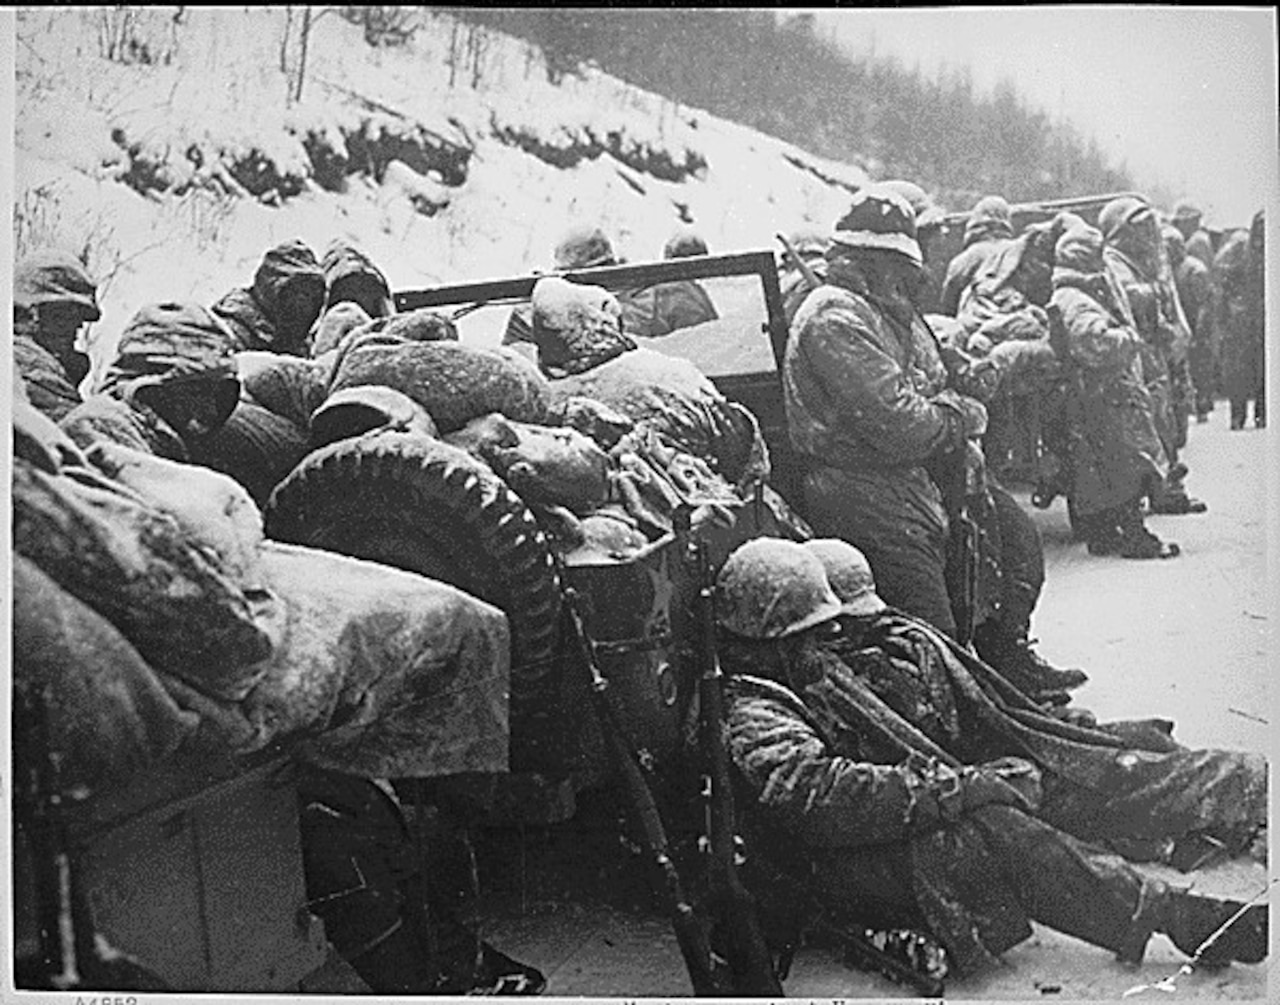 Marines in winter combat gear hold rifles and wait by trucks in the snow by a hill.